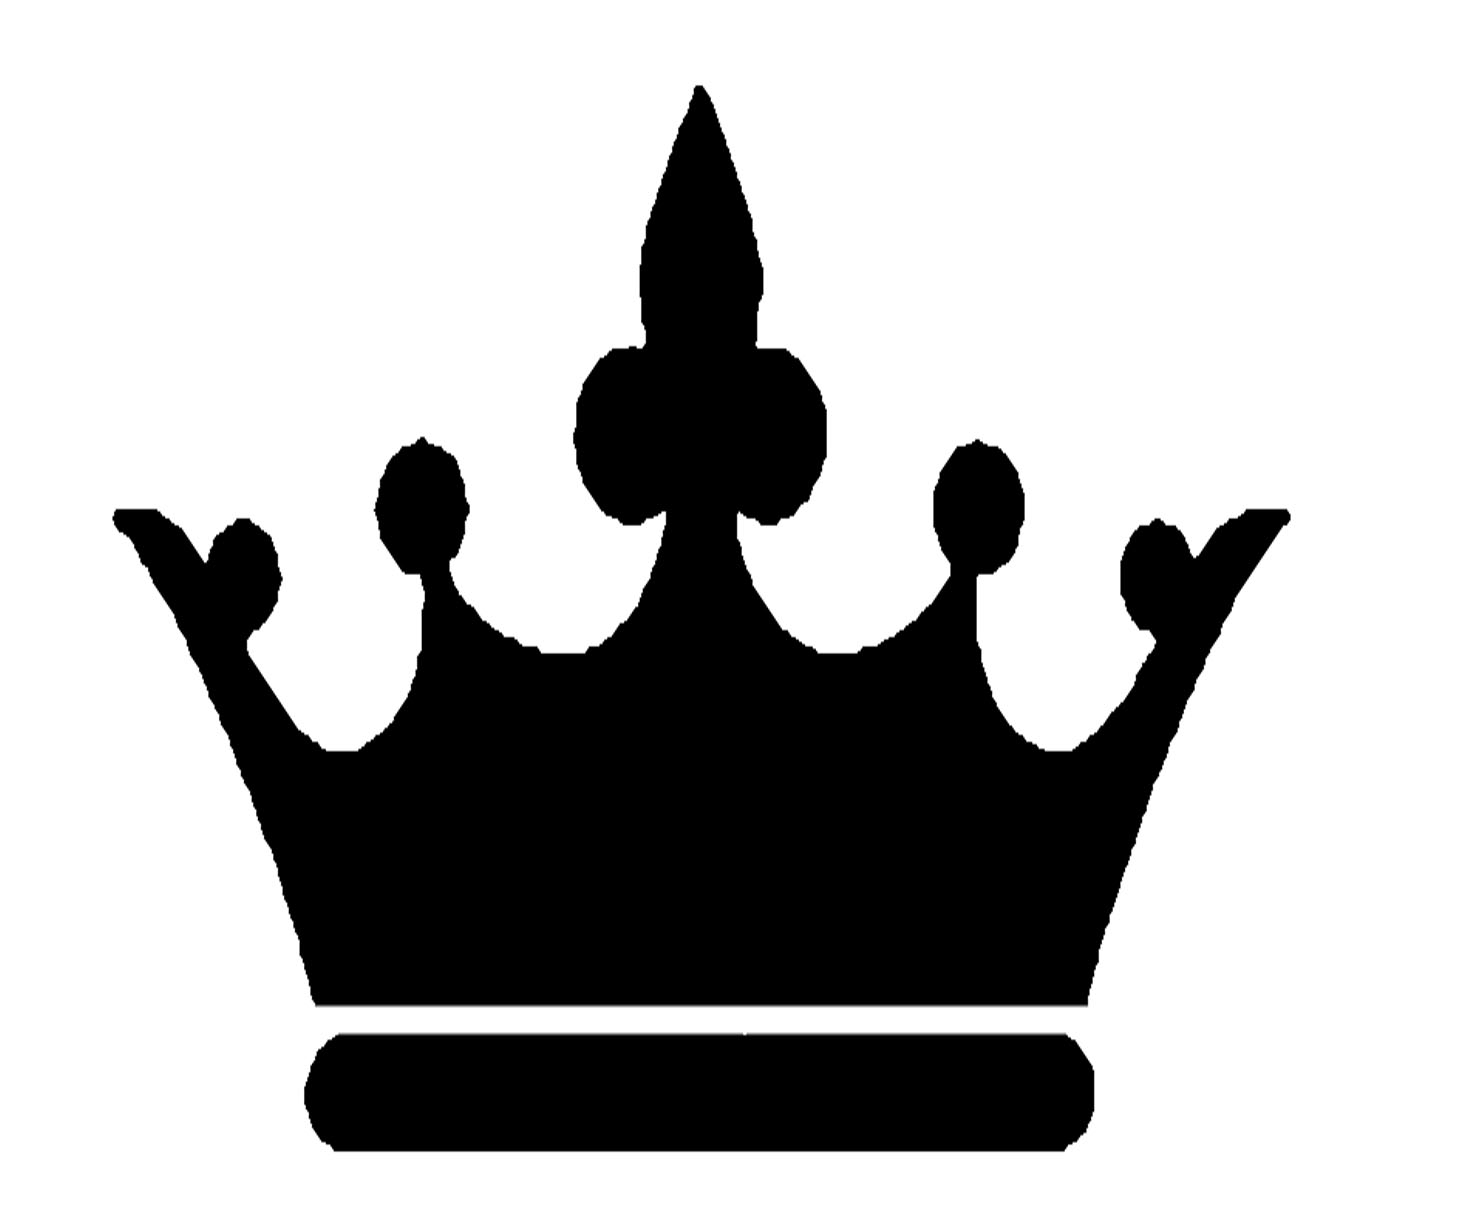 Clipart crown image transparent Crown Clipart - Clipart Kid image transparent